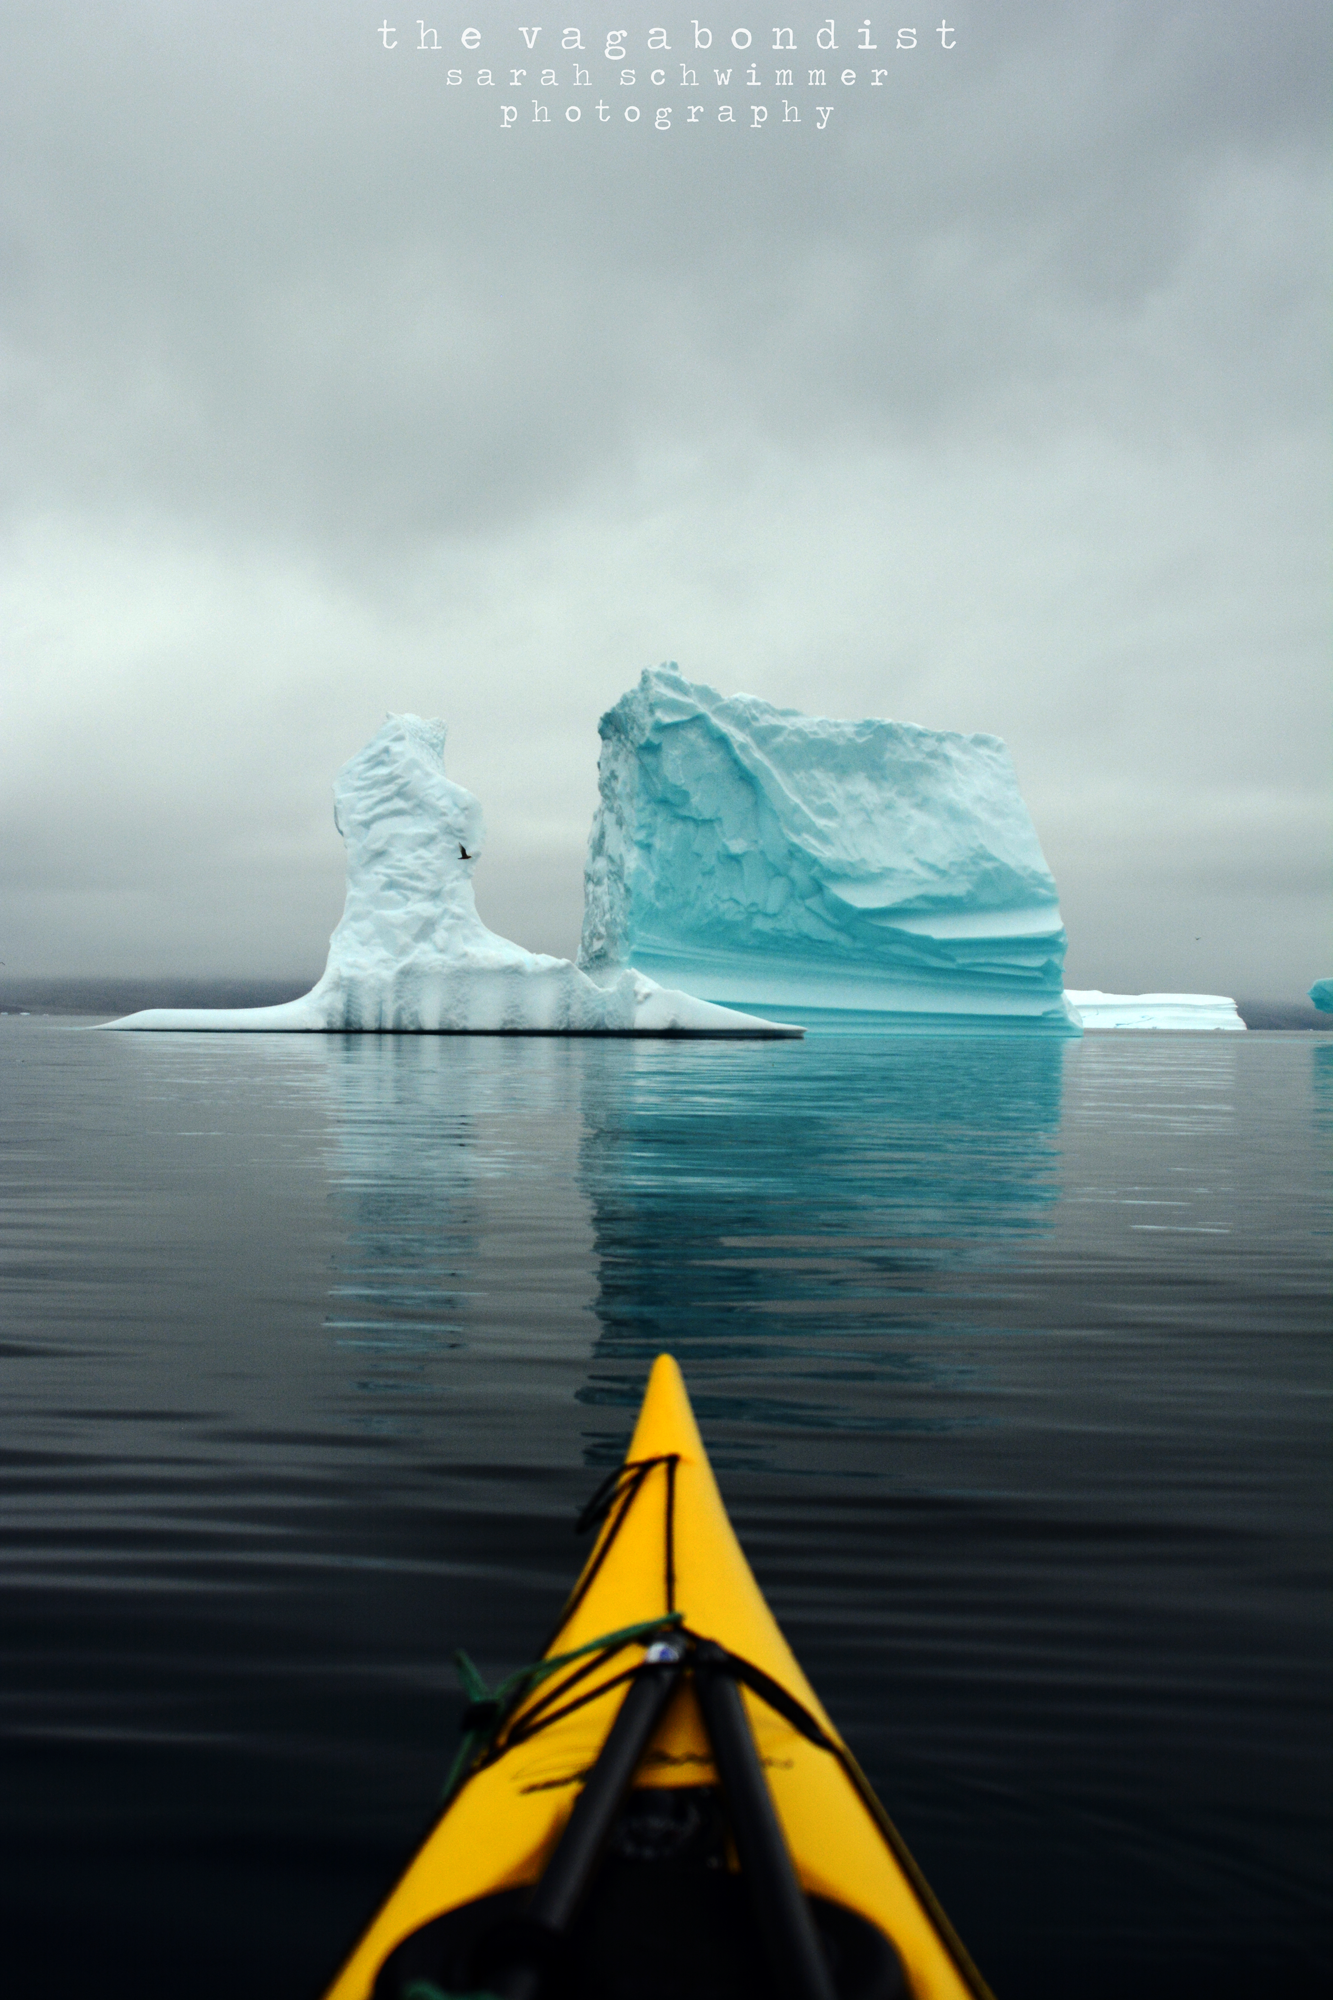 A Kayak and an Iceberg